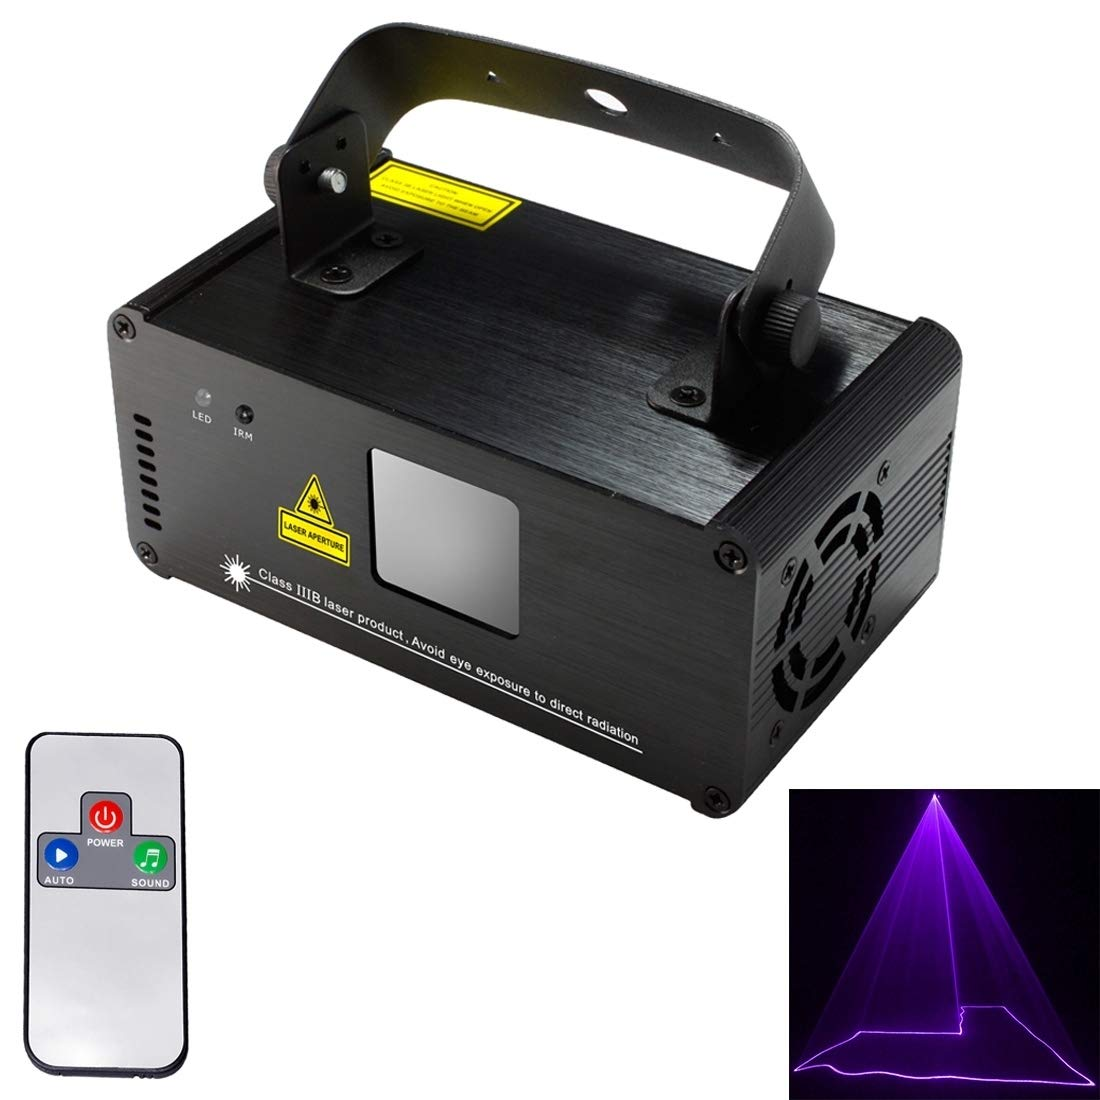 stage lighting DM-V150 18W LED Single Beam Projector with Remote Controller, Auto Run/Sound Control Modes, AC 100-240V